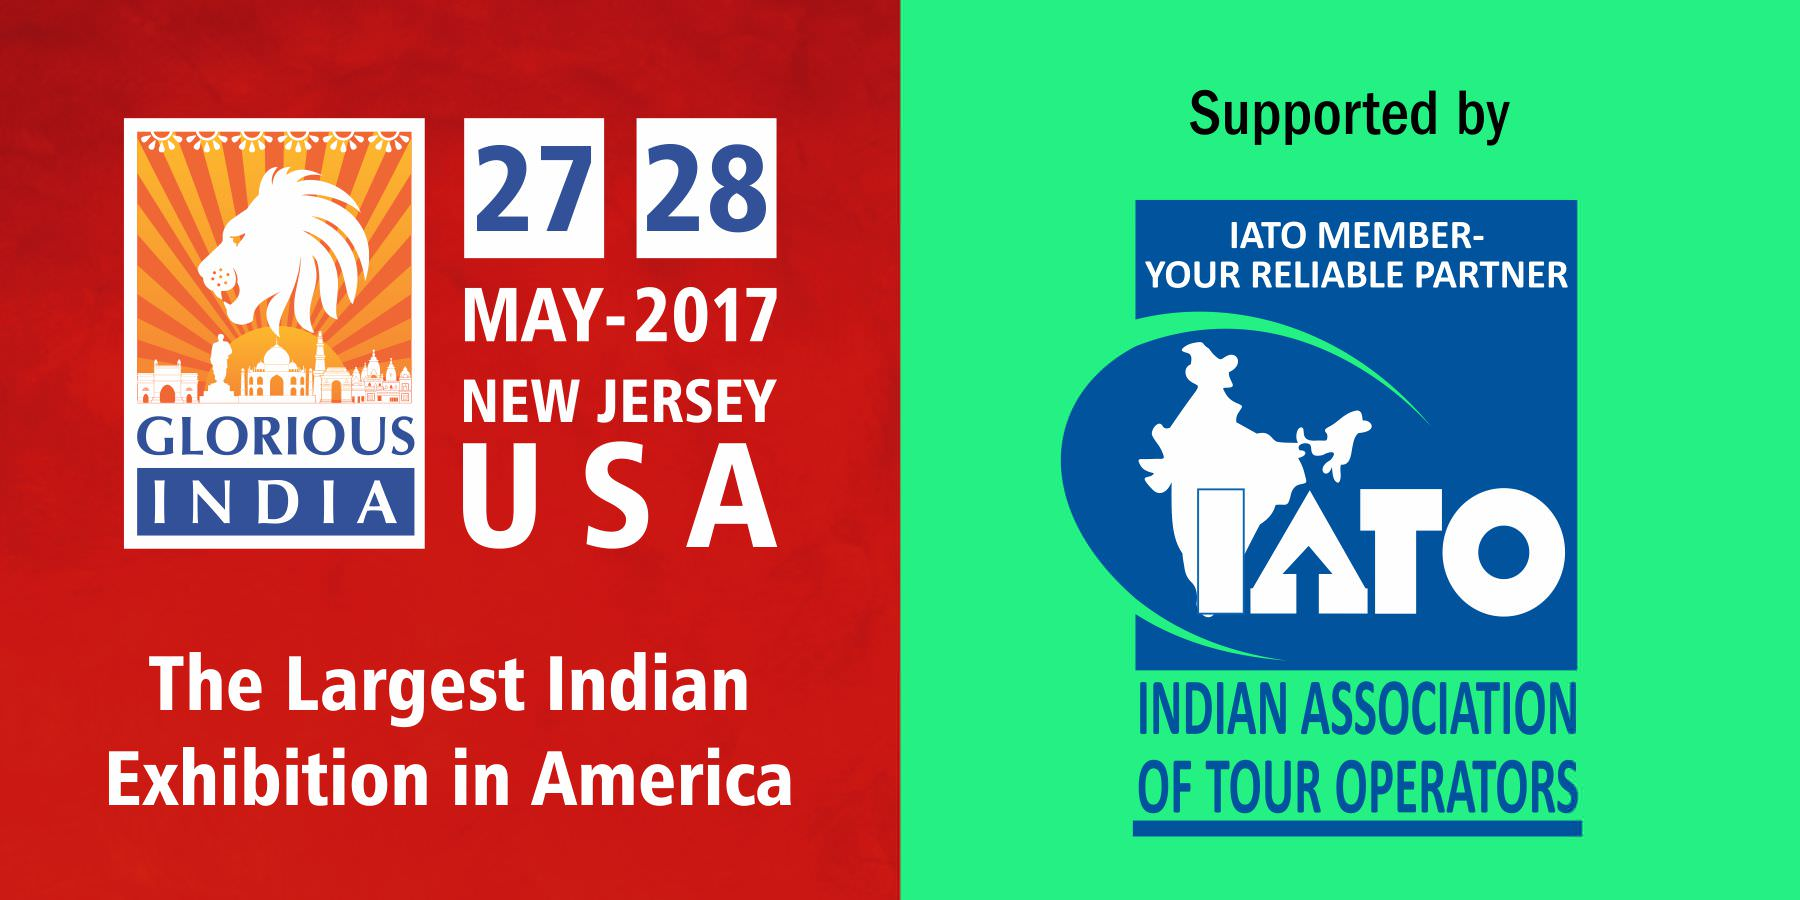 Glorious India Expo - Indian Association of Tour Operators (IATO)